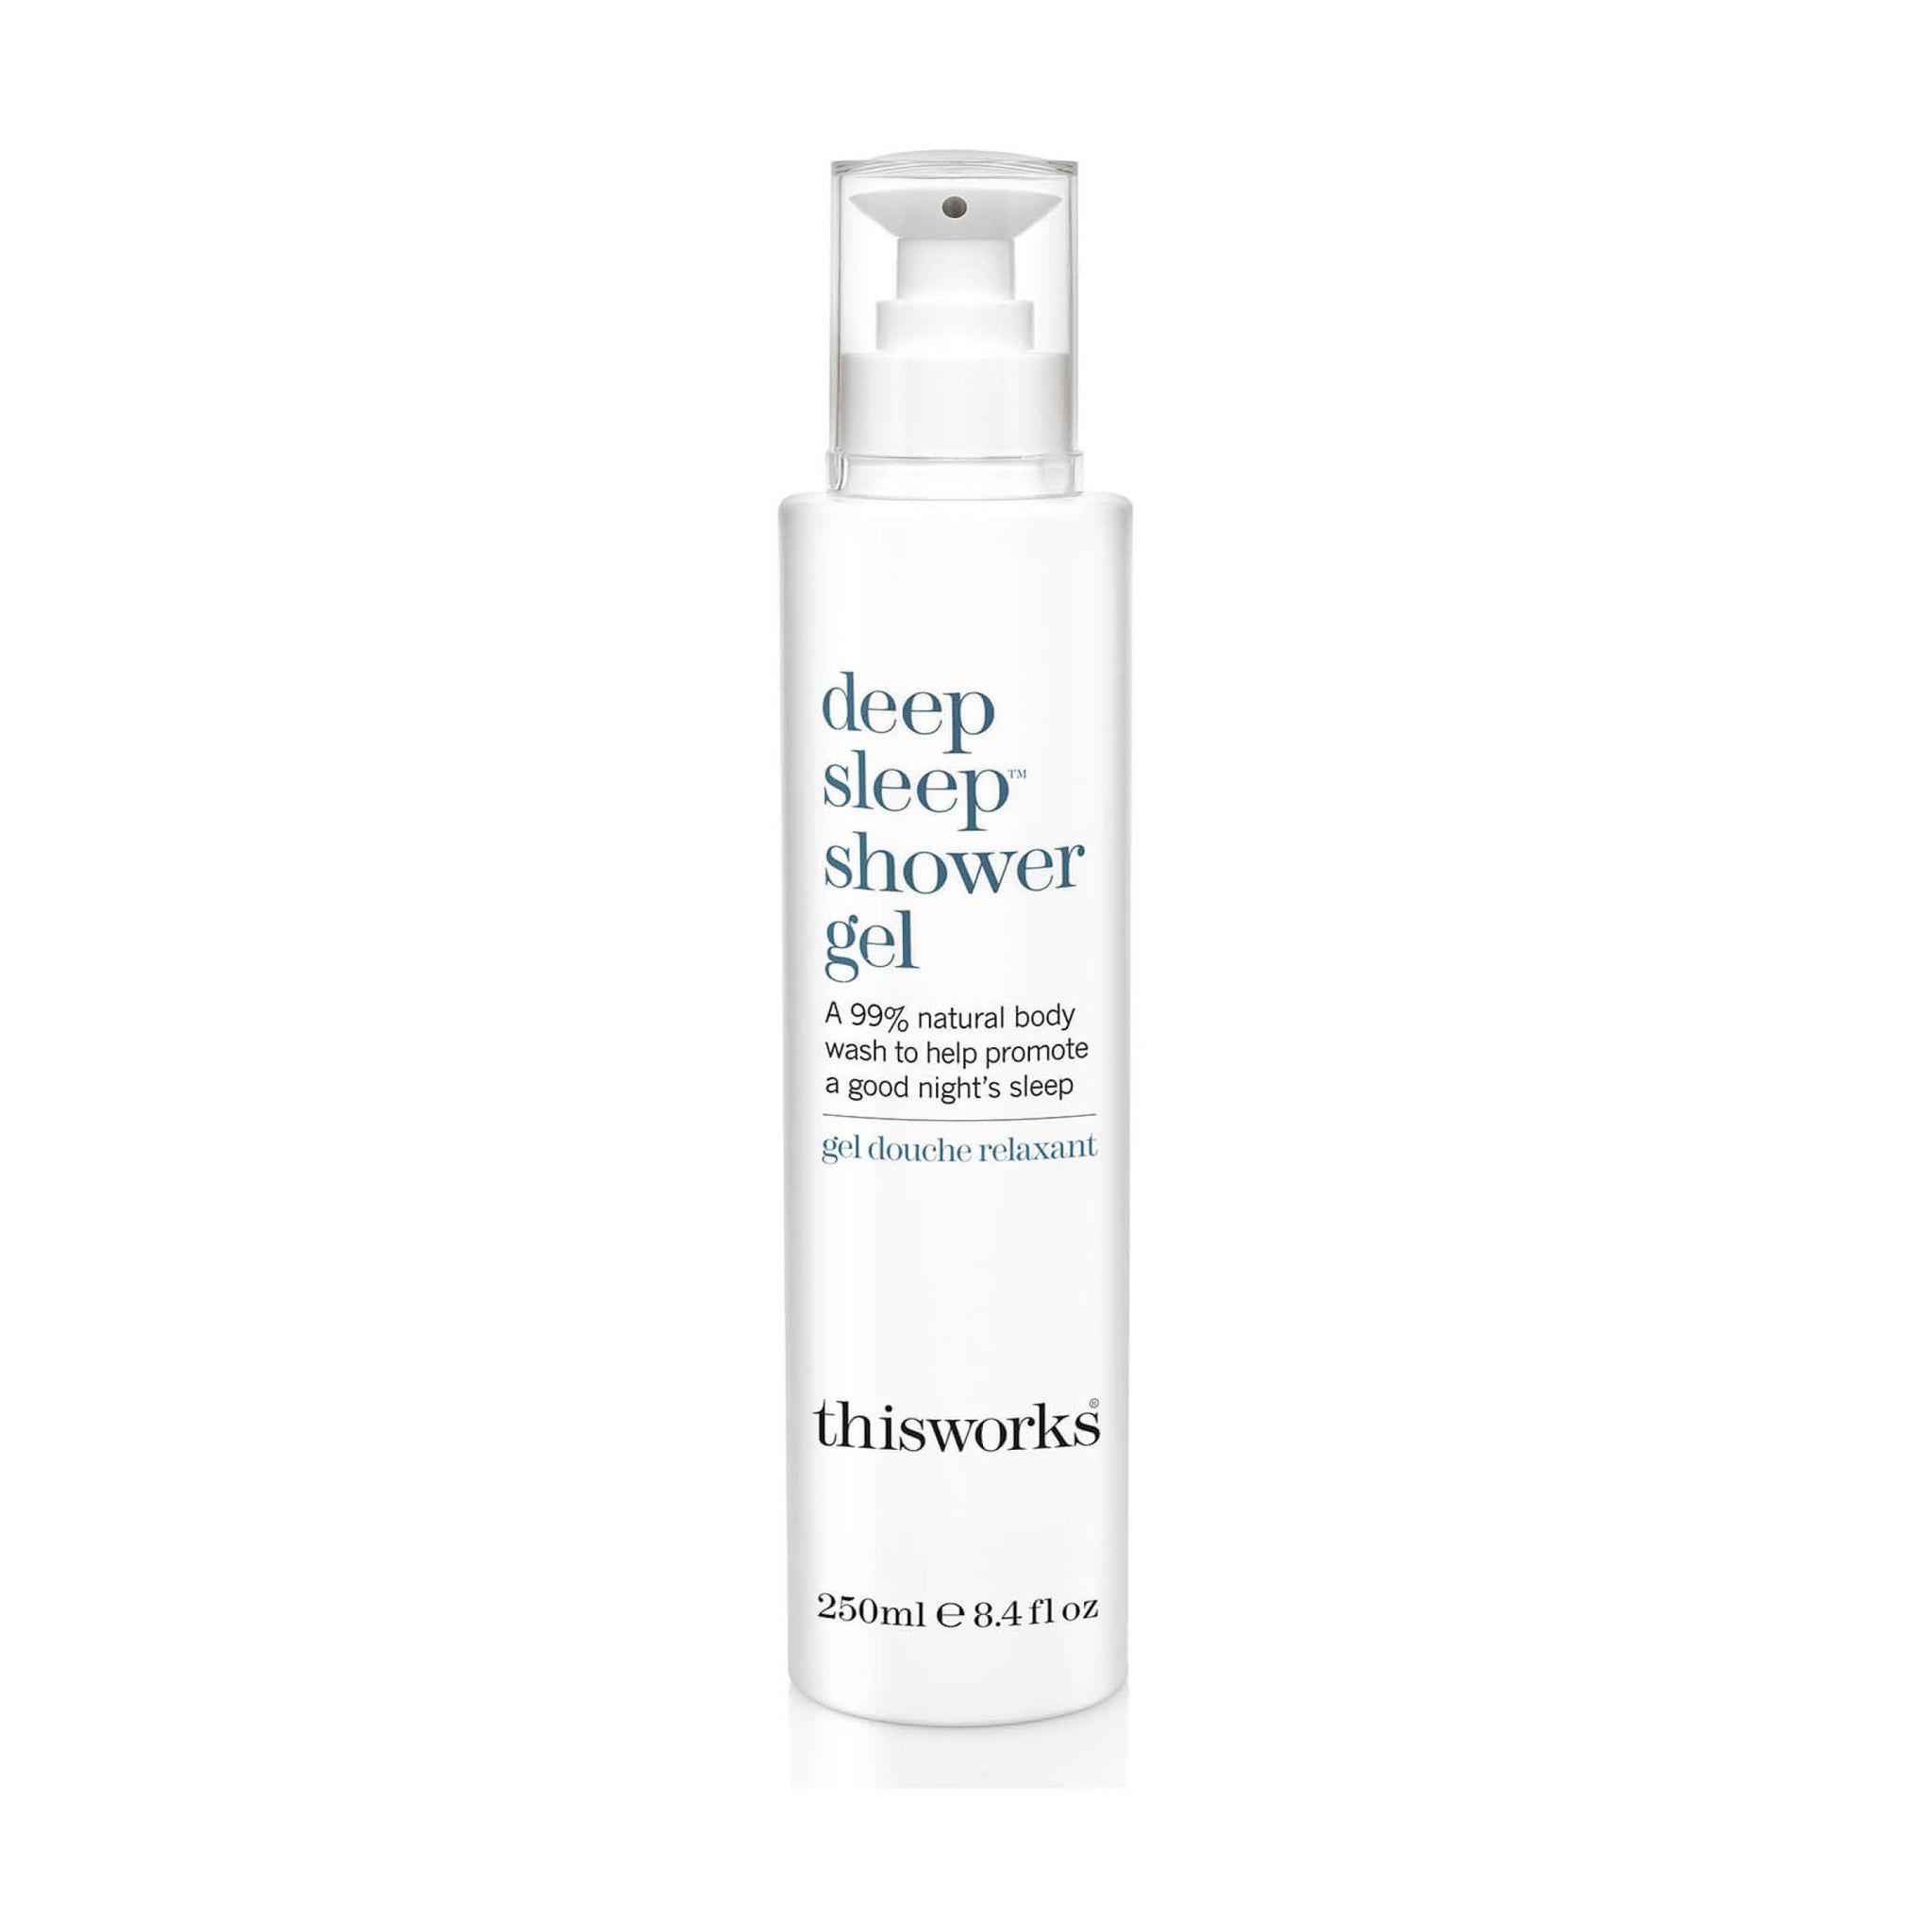 thisworks Deep Sleep Shower Gel 250ml